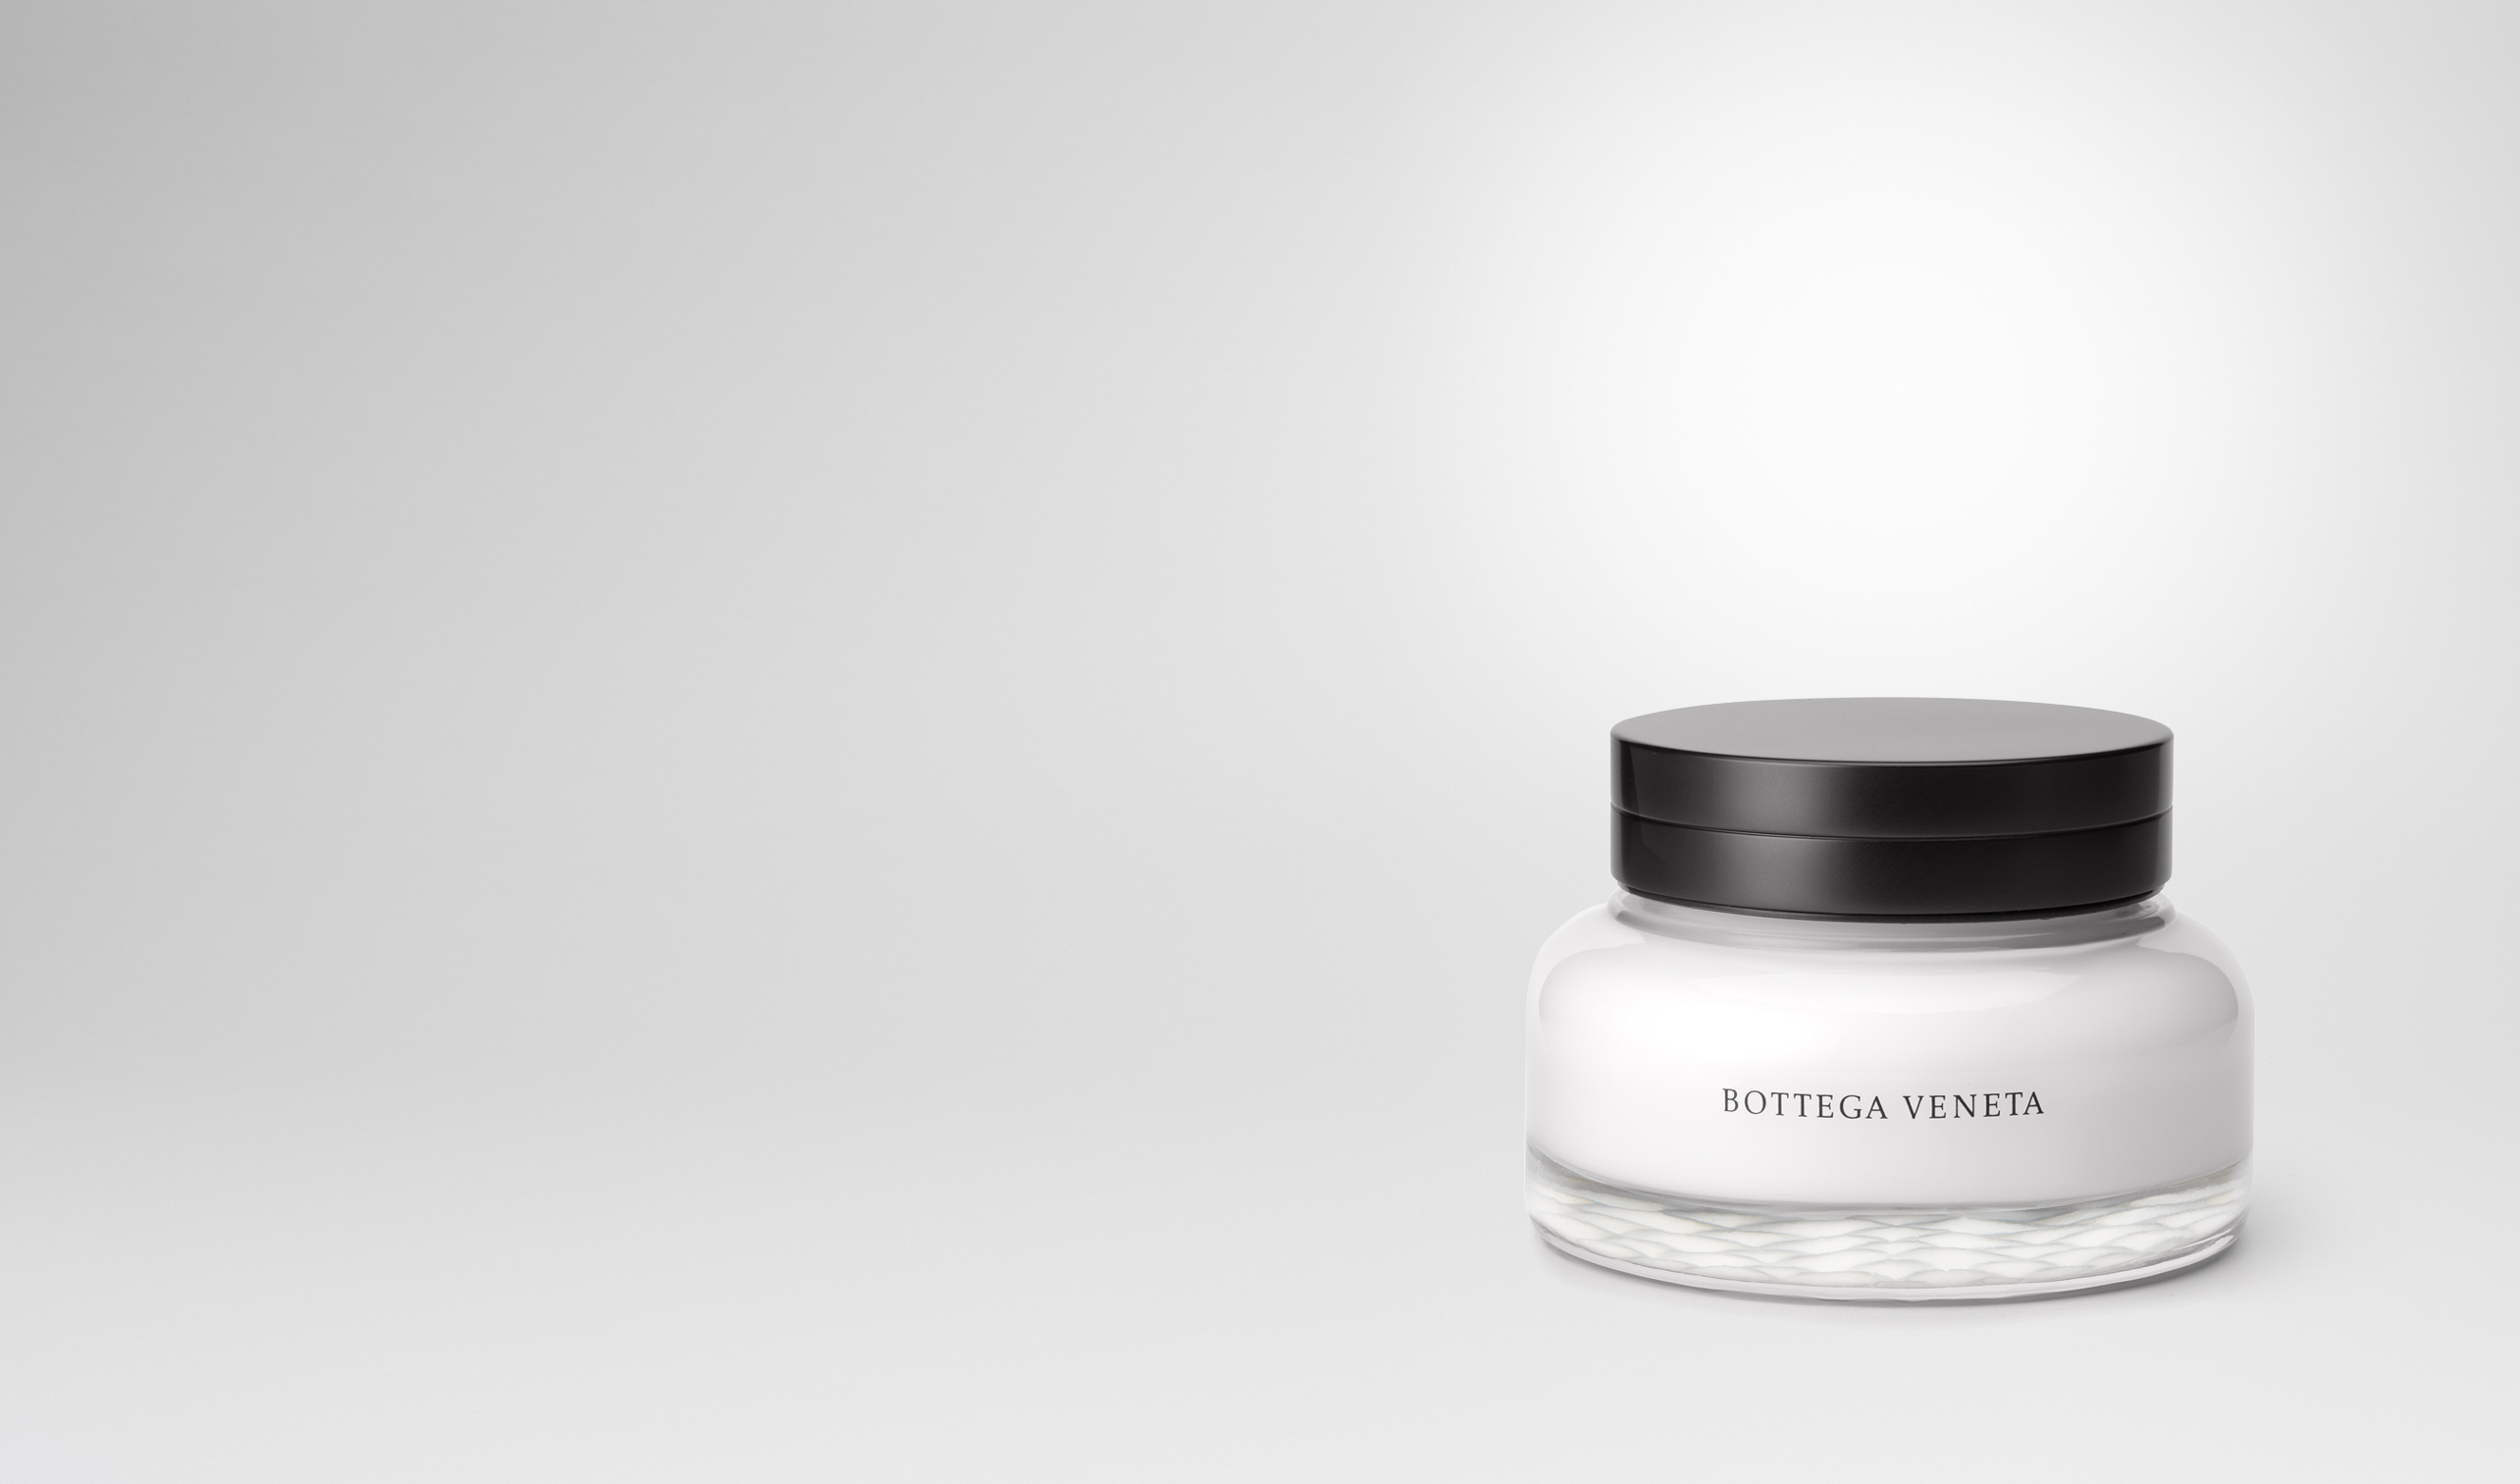 BOTTEGA VENETA Bath and Body D Perfumed Body Cream 200ml pl